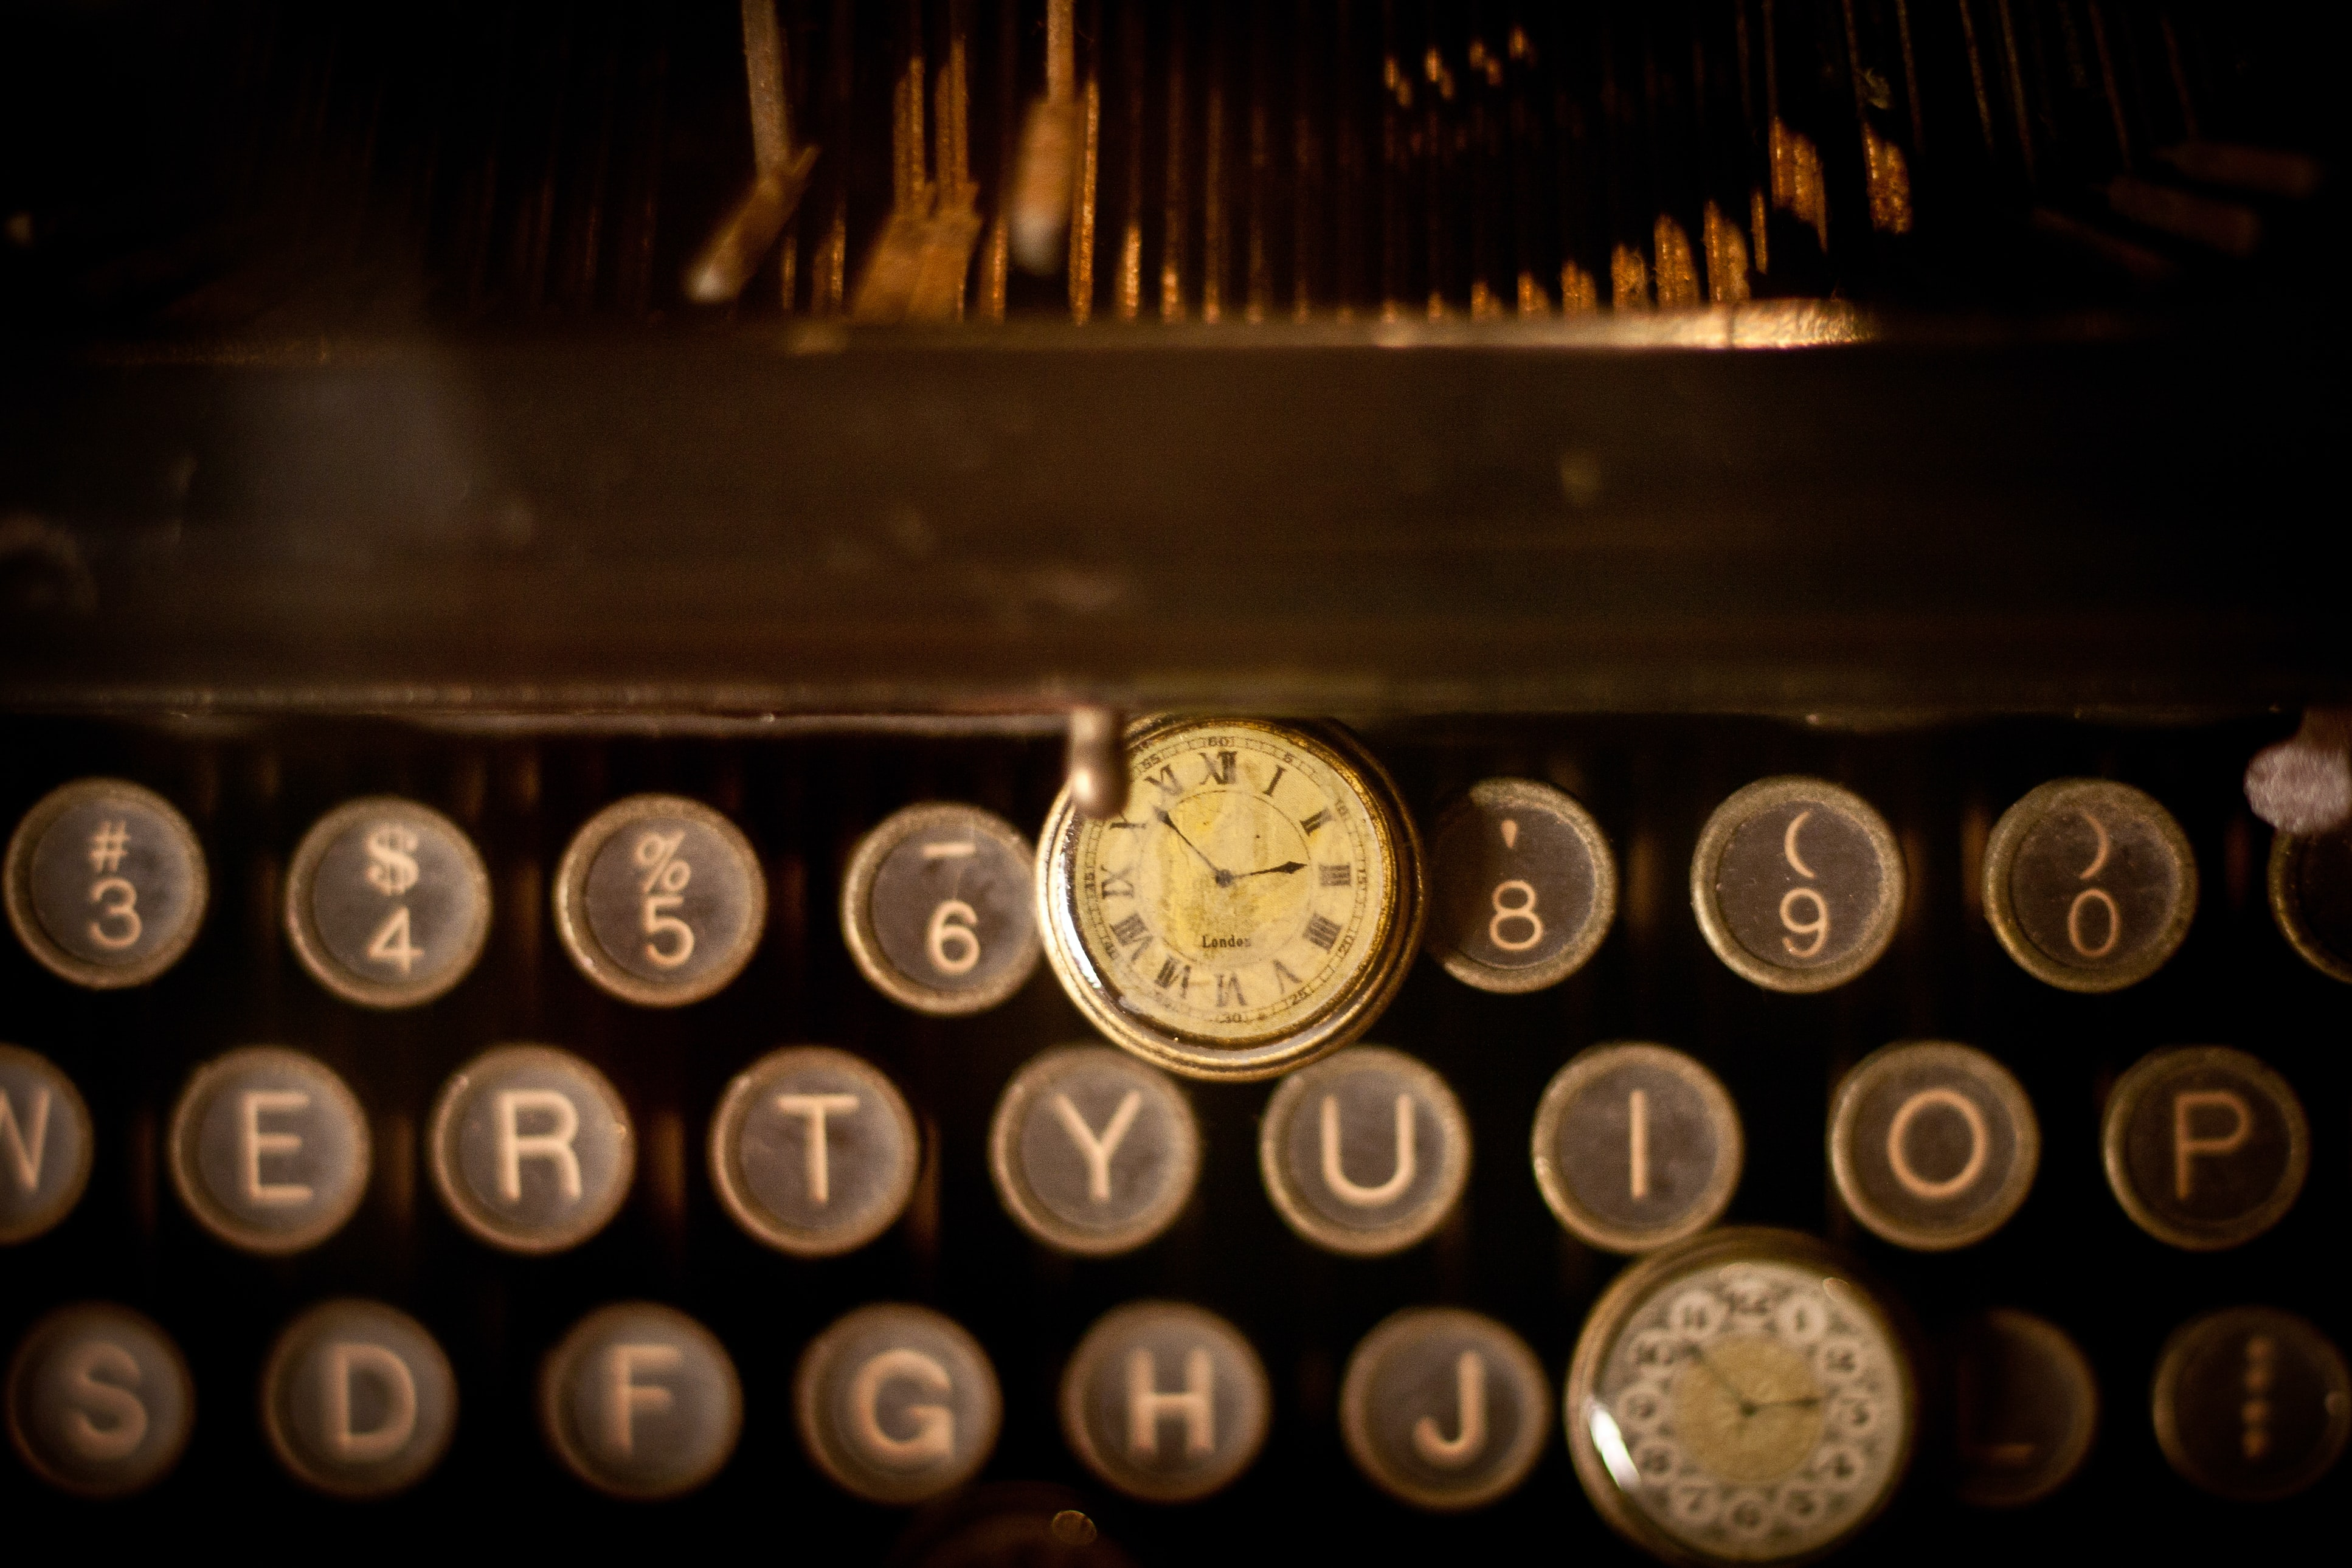 An old pocket watch on a vintage typewriter